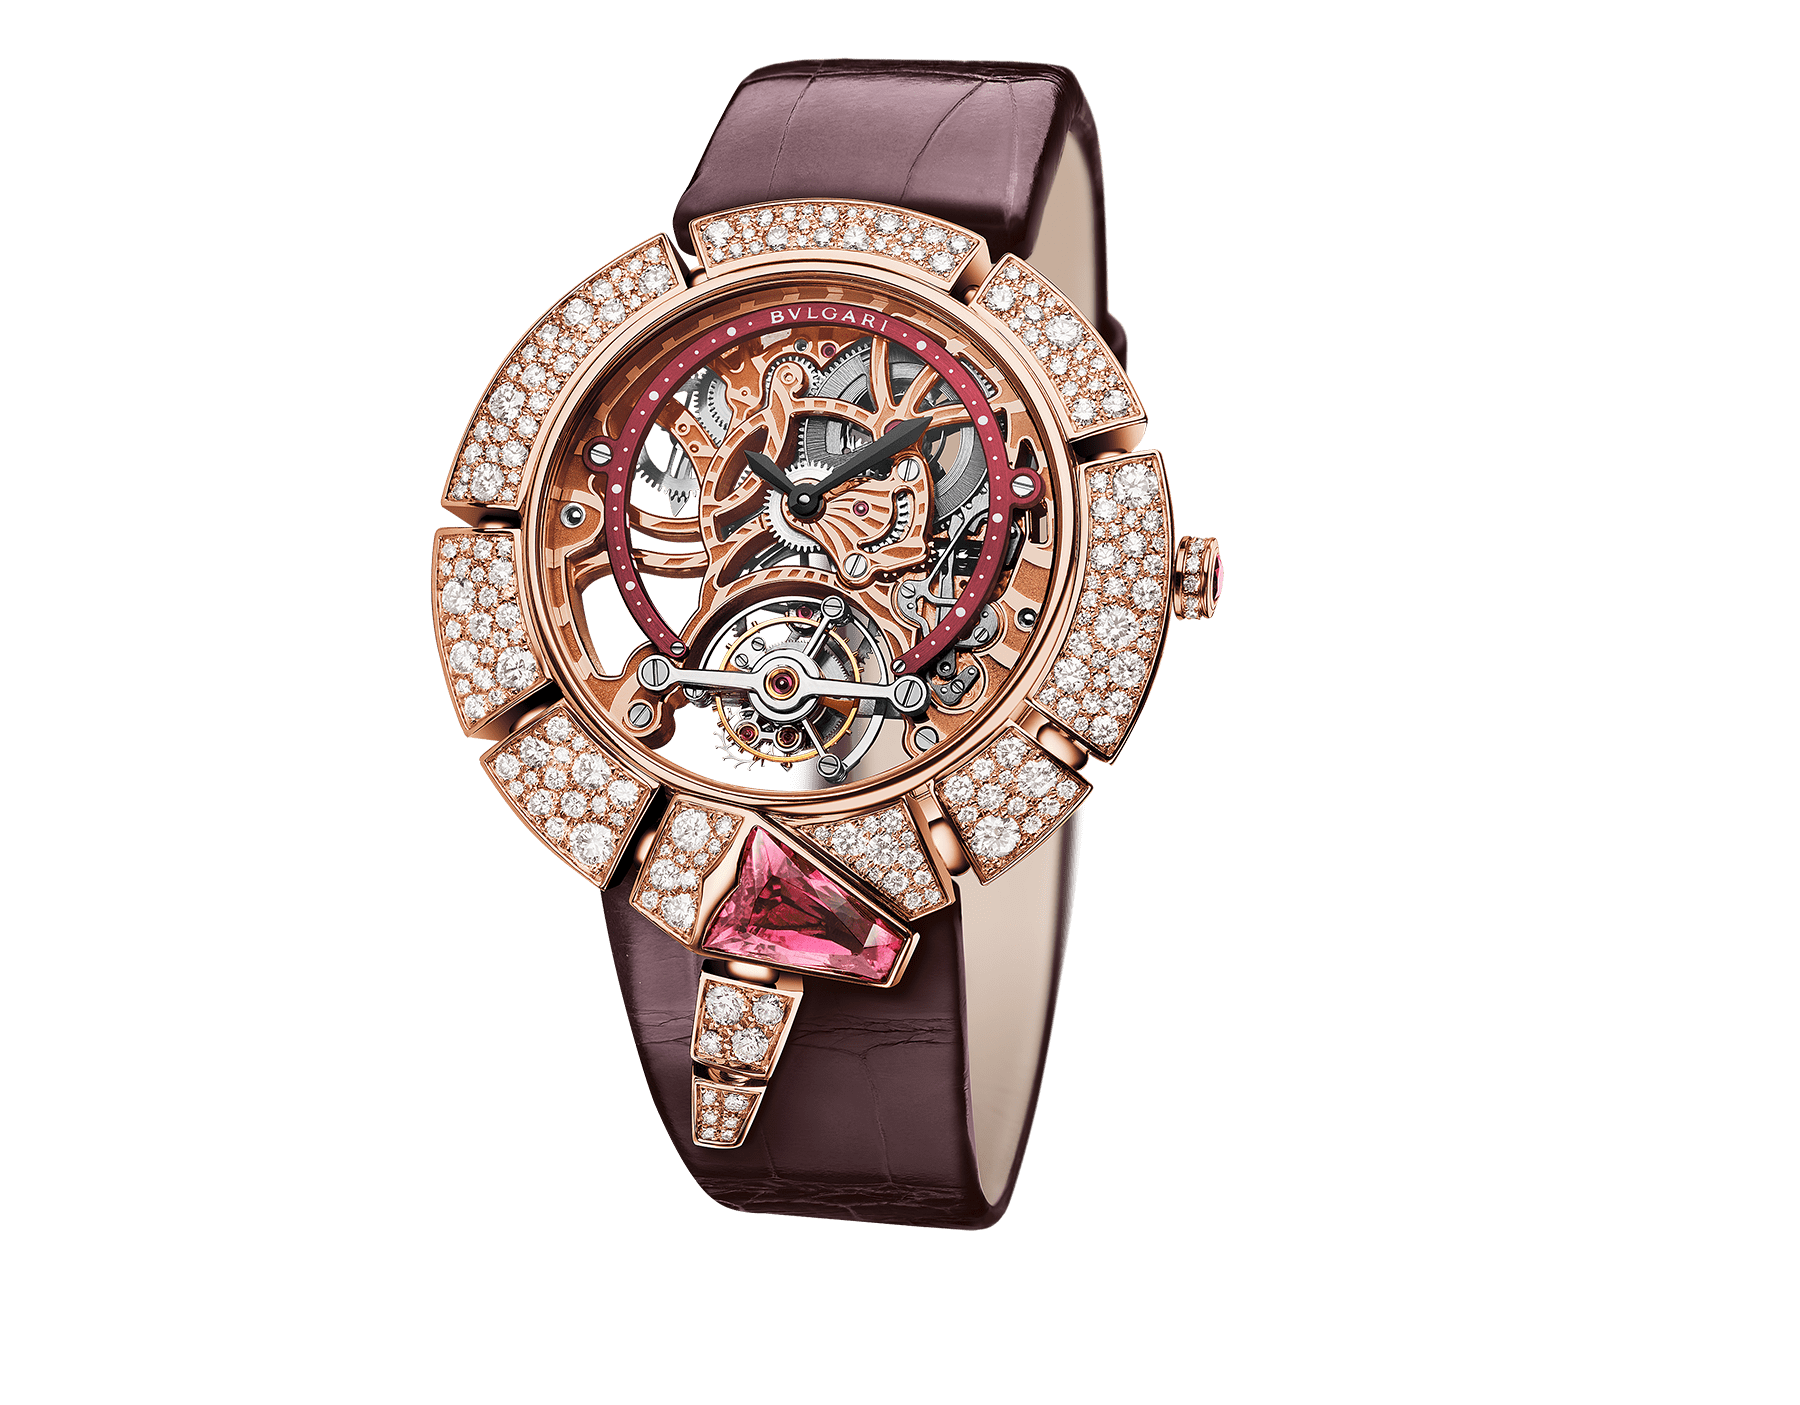 Serpenti Incantati Limited Edition watch with mechanical manufacture skeletonized movement, tourbillon and manual winding. 18 kt rose gold case set with brilliant cut diamonds, transparent dial and burgundy alligator bracelet. 102540 image 1